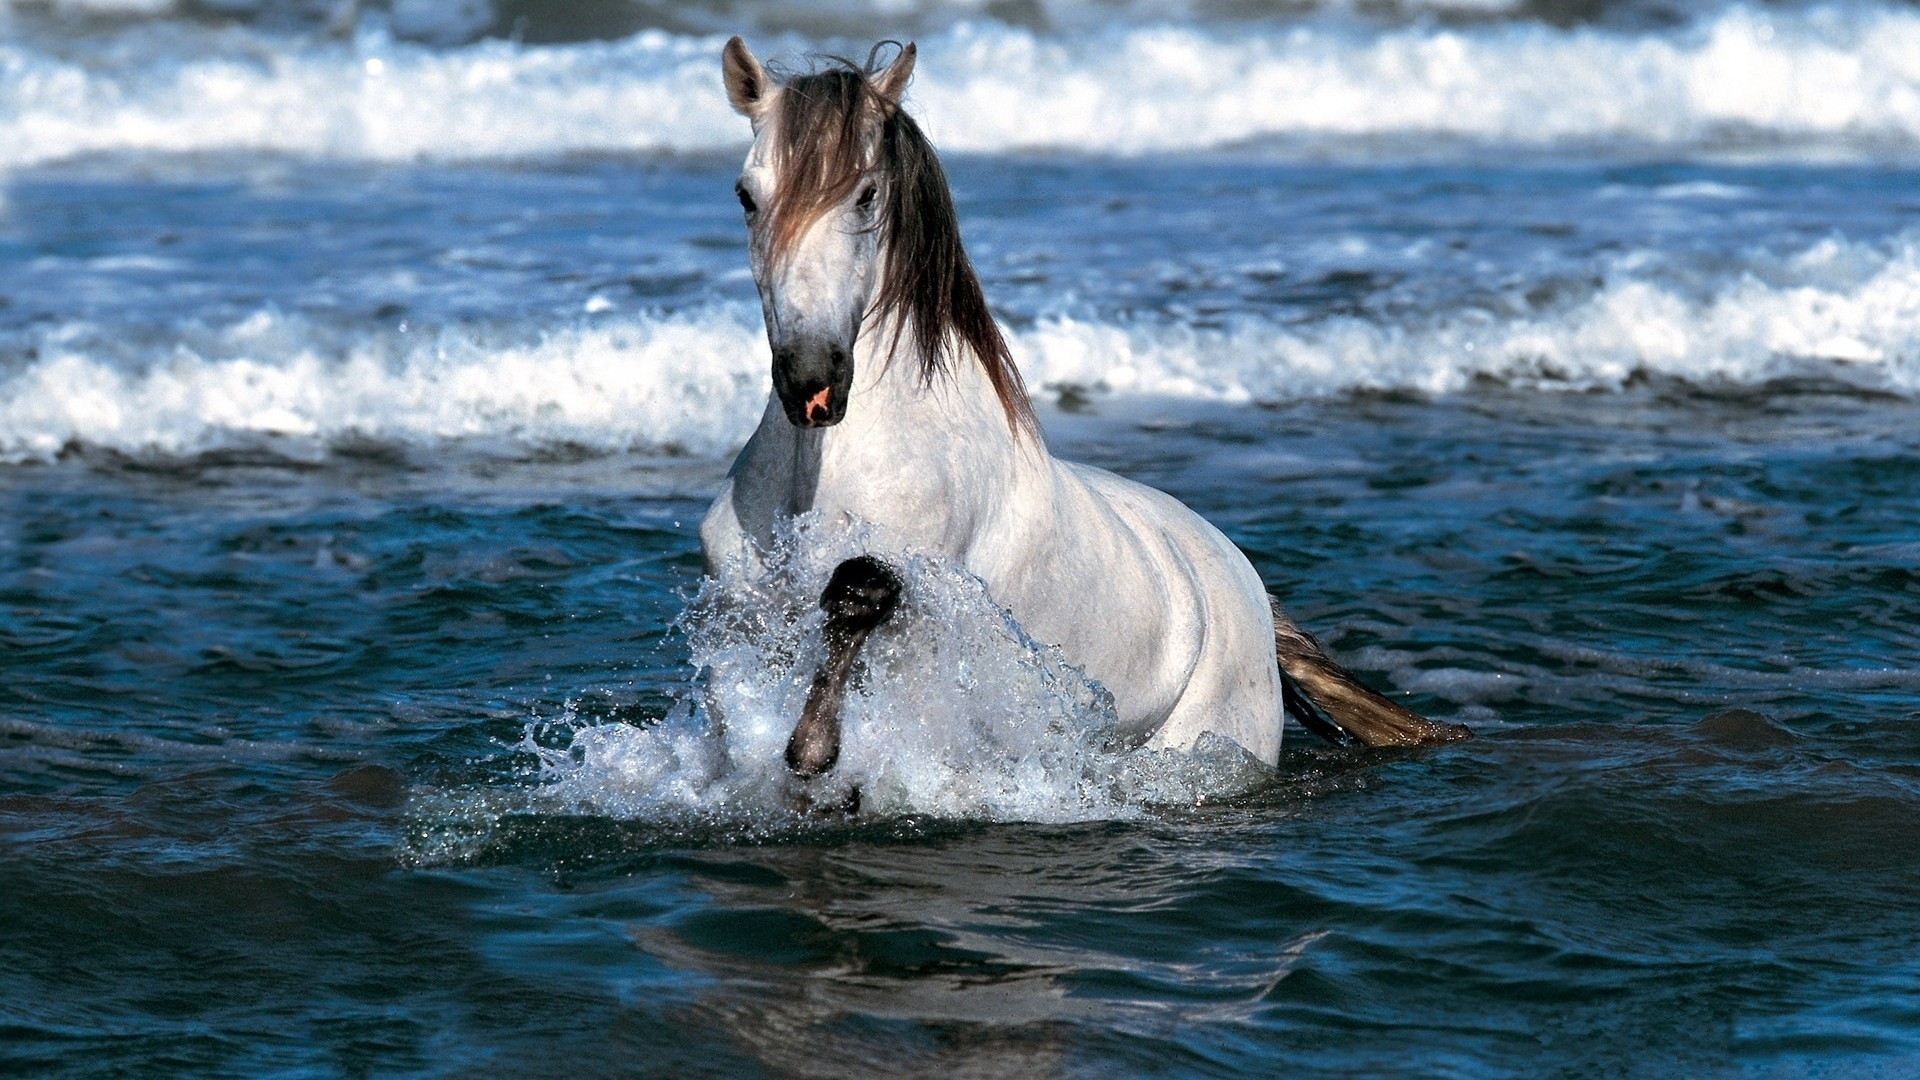 A Gorgeous White And Brown Horse In Water Wallpaper Download 1920x1080